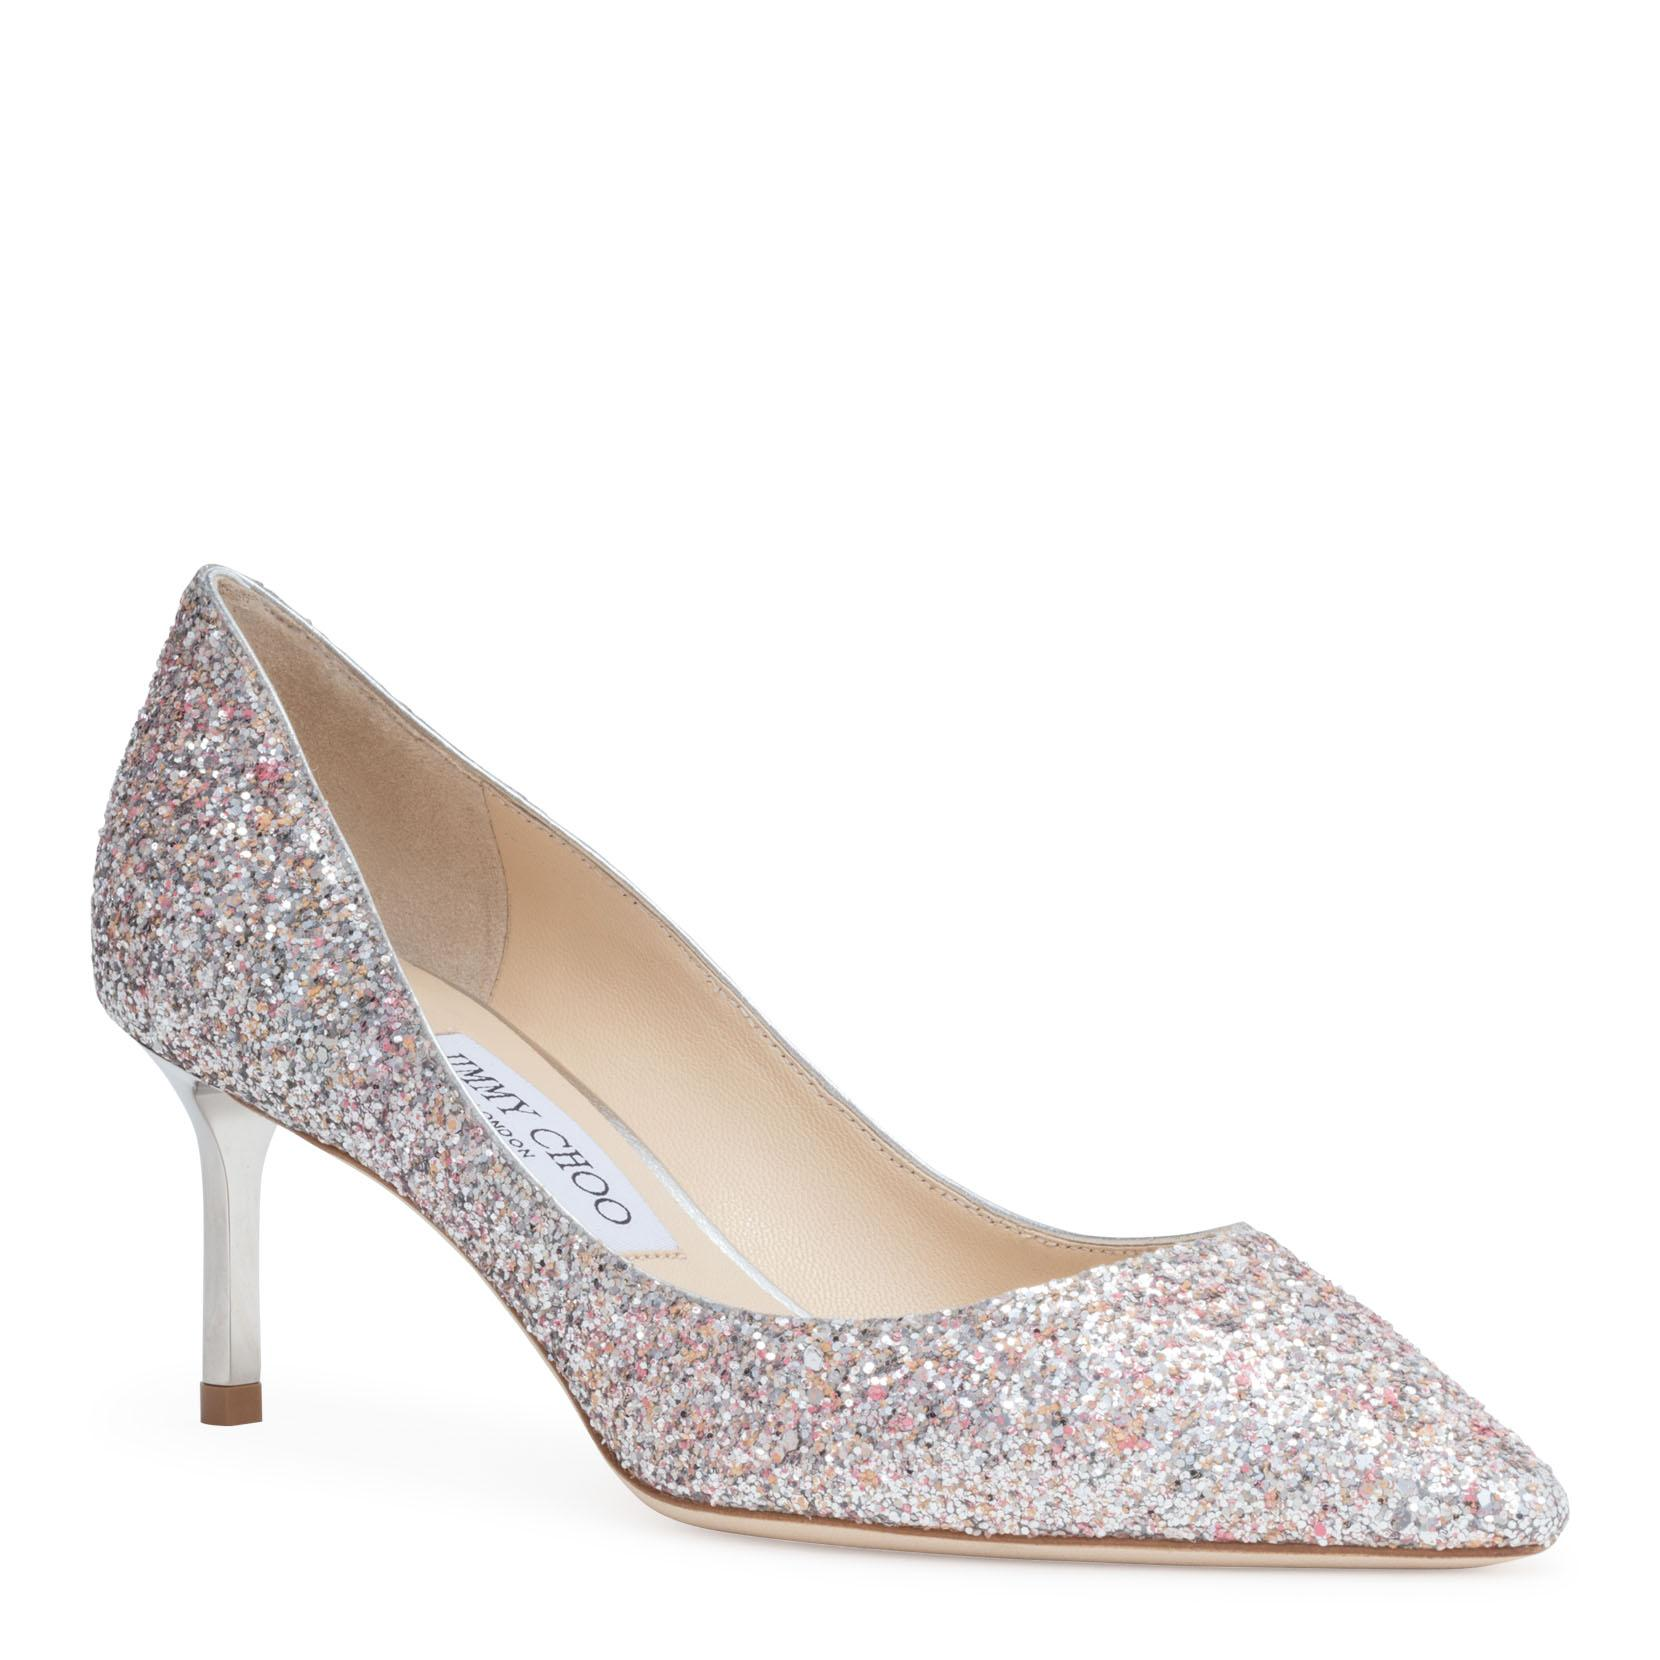 c013248cbe77 Jimmy Choo Romy 60 Viola Mix Speckled Glitter Pointy Toe Pumps In Metallic